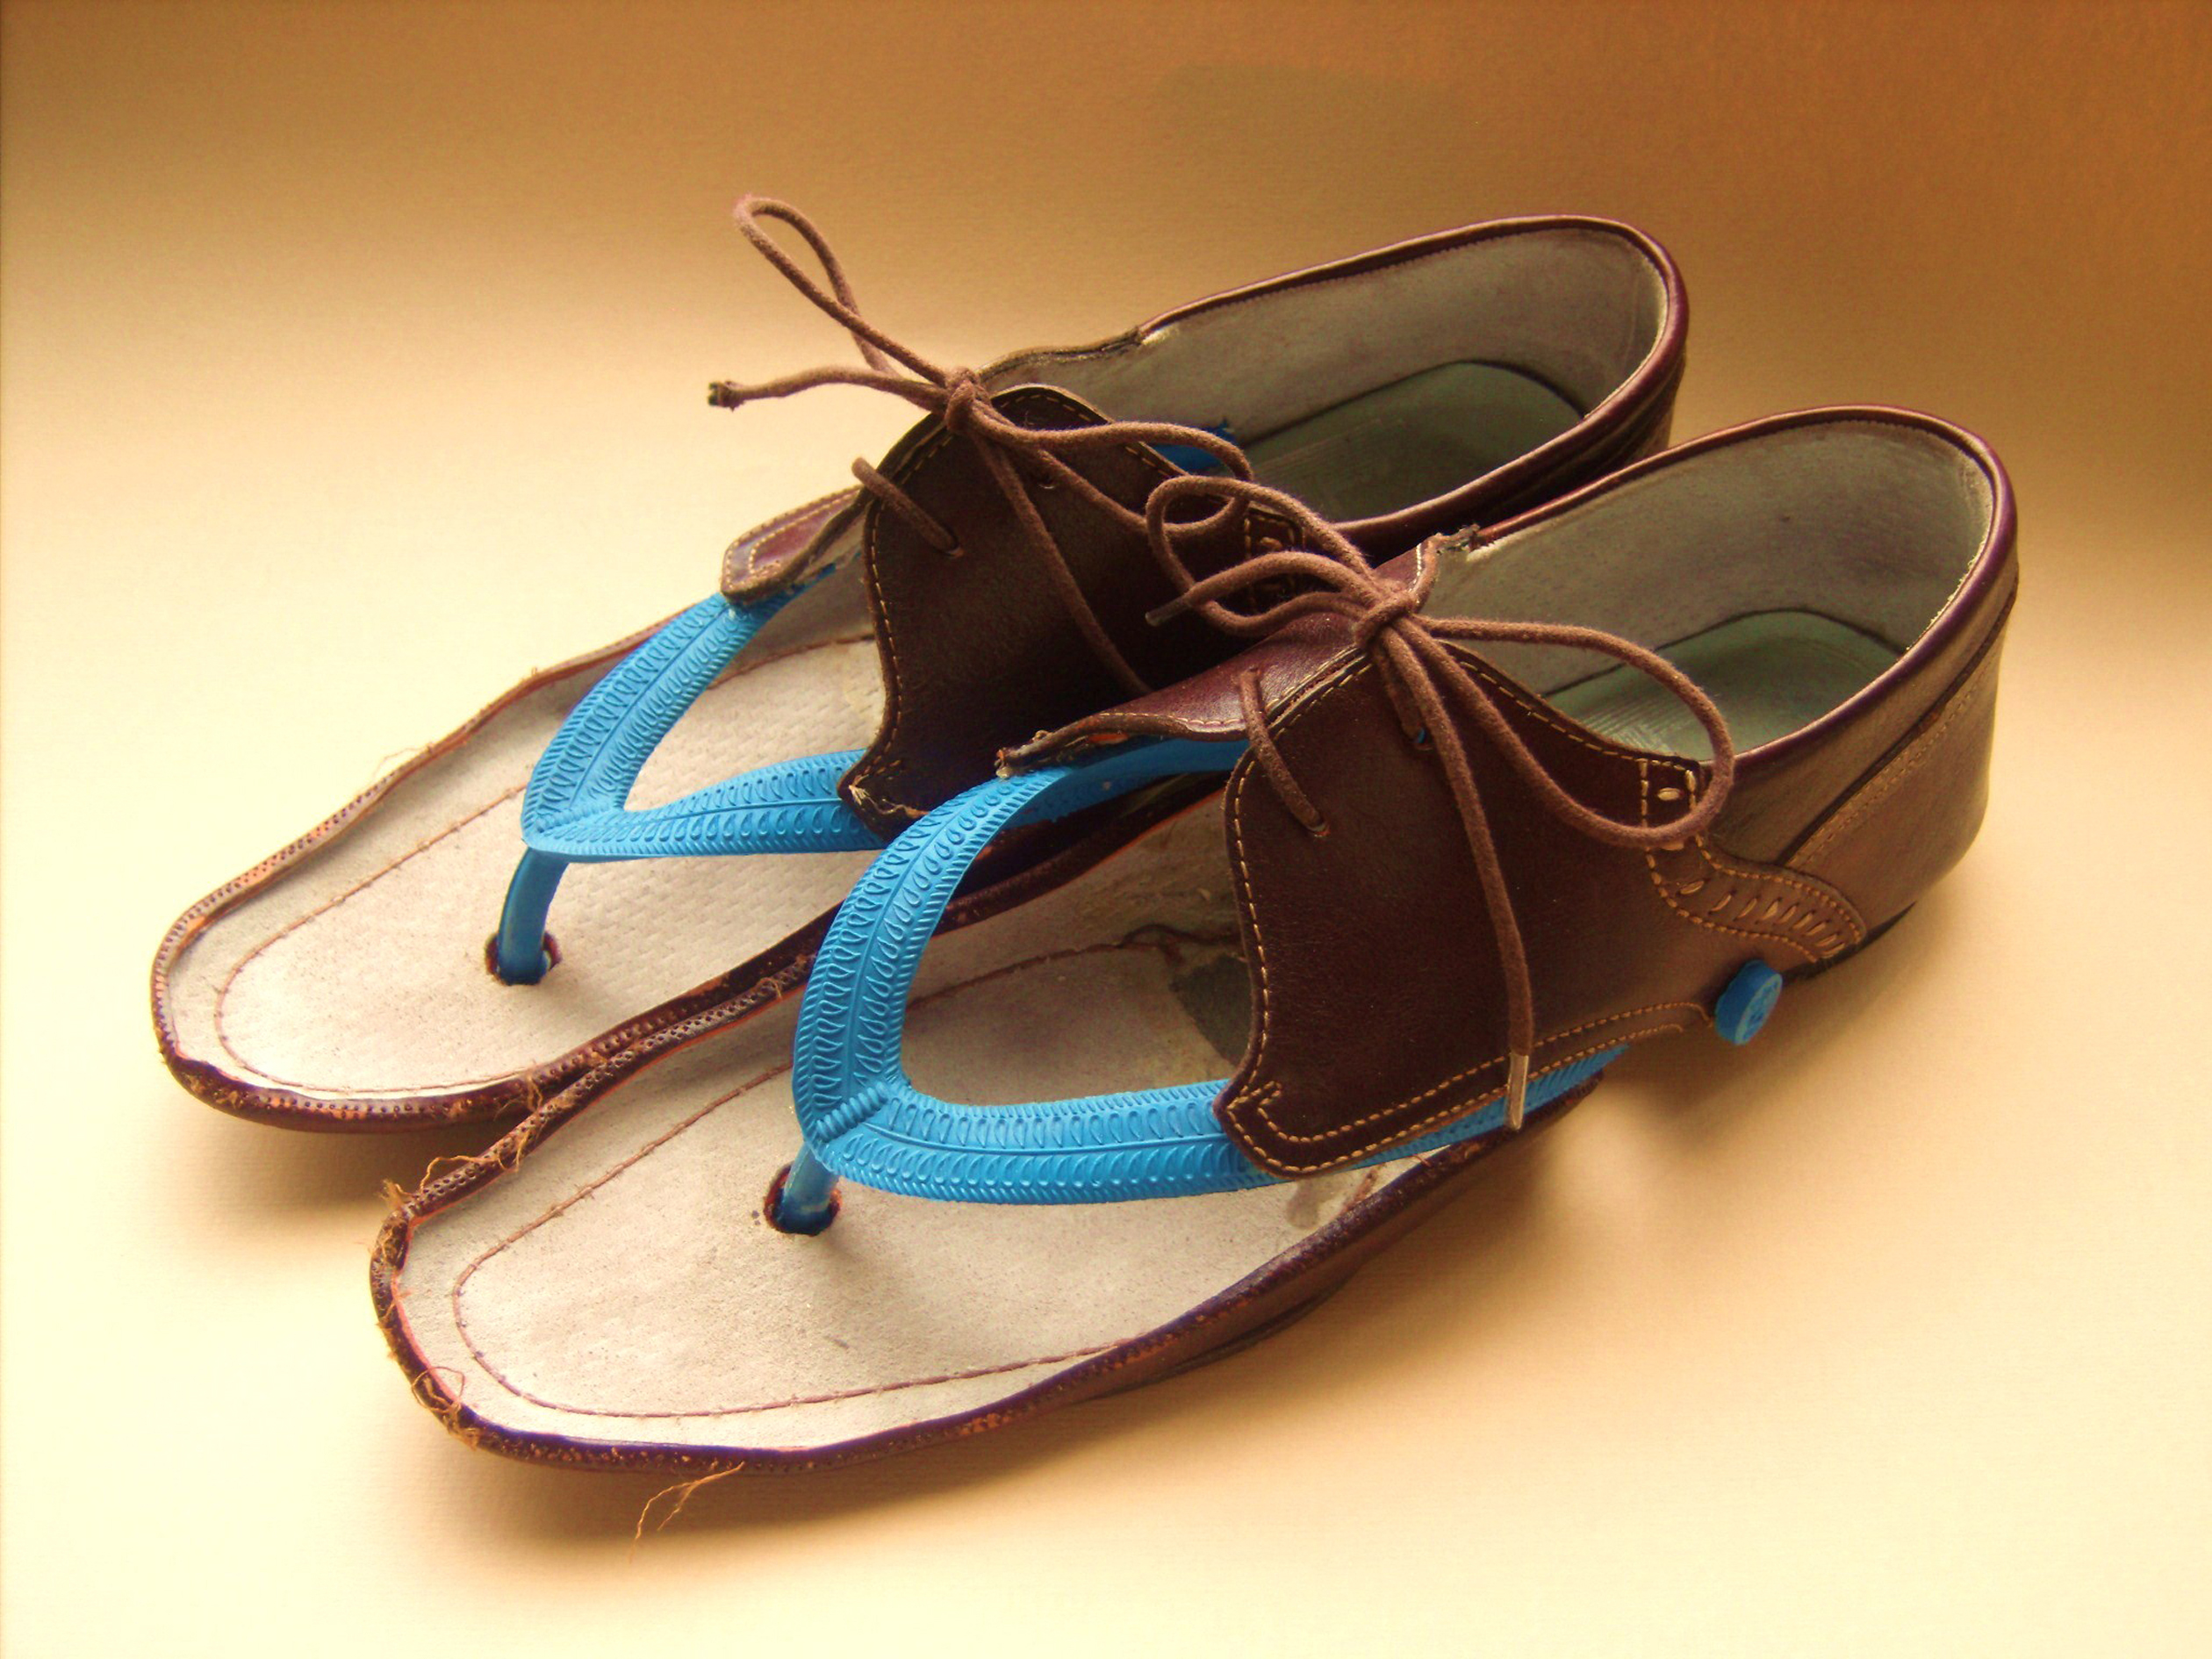 Jasleen Kaur, Fathers Shoes, 2009. Image courtesy of the artist.